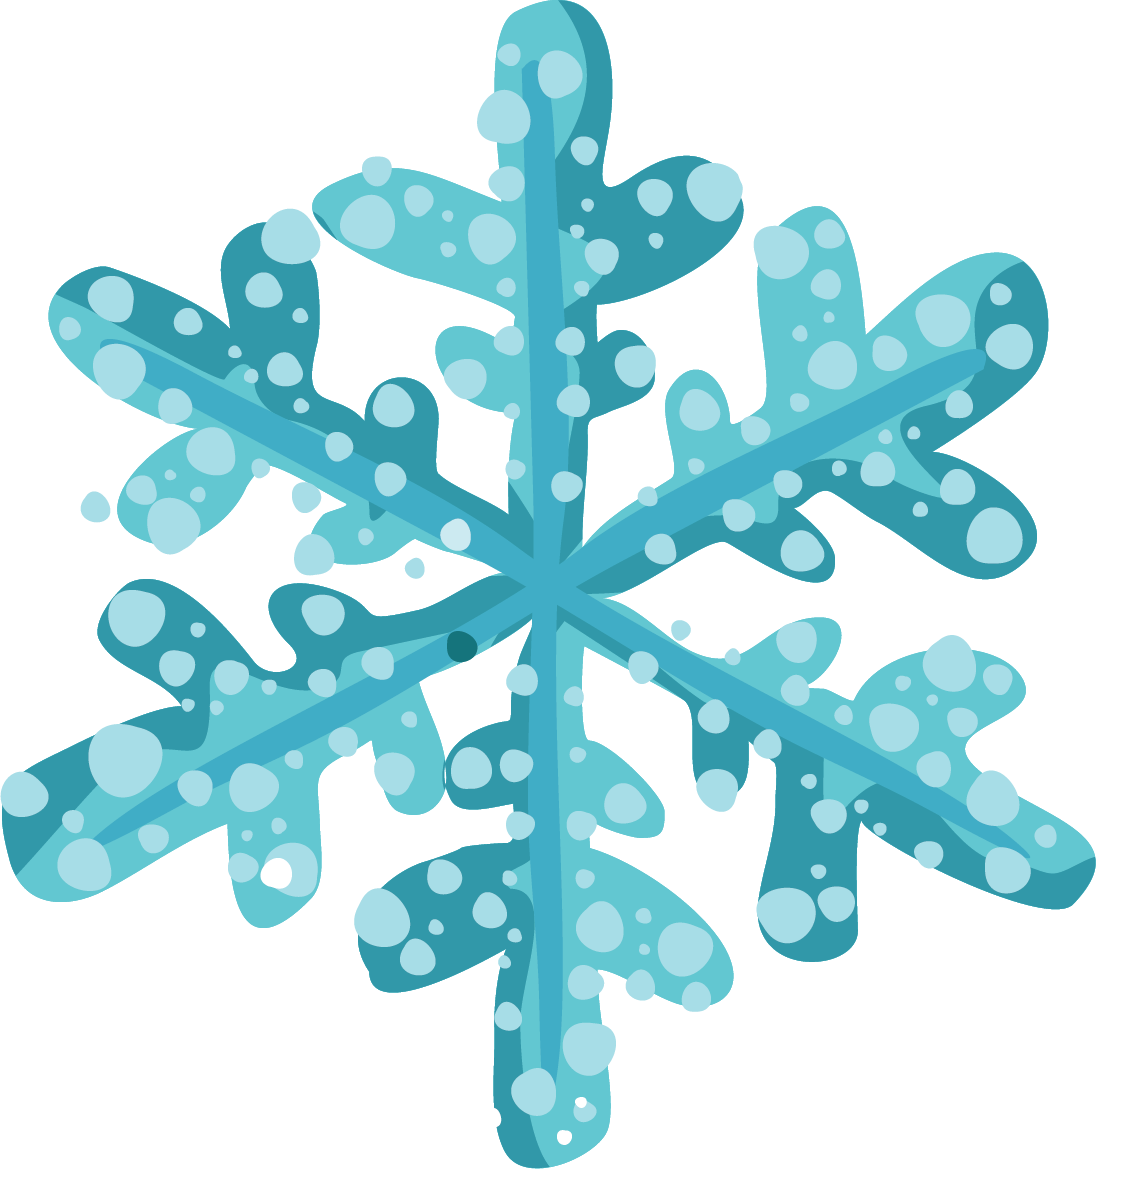 Snowflake clipart with face clip art transparent Free christmas snowflake clipart snowflakes for christmas - Clipartix clip art transparent